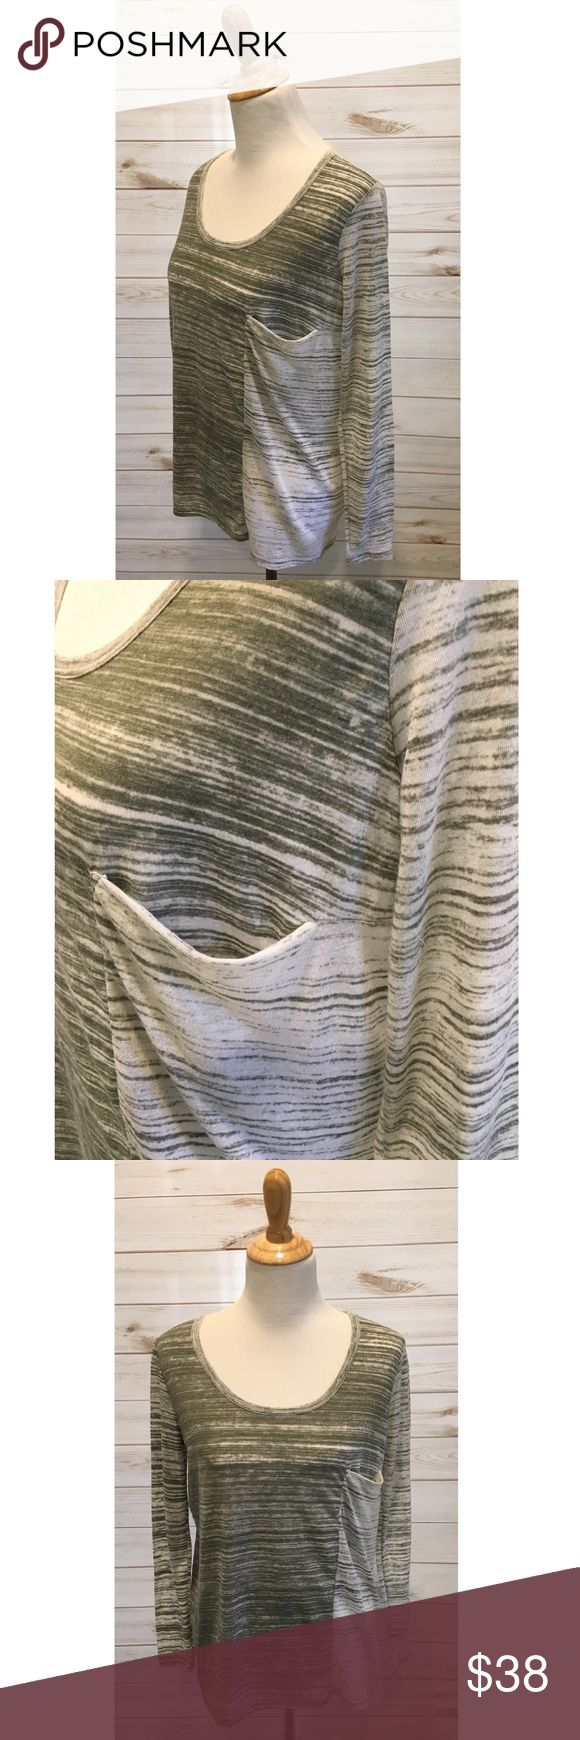 """Helmut Lang Green & White Burnout Tissue T HELMUT Helmut Lang long sleeved tissue shirt. Size M. Green & white 'burnout' style. Slouchy pocket in the front. Excellent condition, no flaws or signs of wear.   Bust: 18.5"""" pit to pit laying flat  Length: 22"""" from shoulder  Sleeve Length: 22.5"""" from shoulder Helmut Lang Tops Tees - Long Sleeve"""